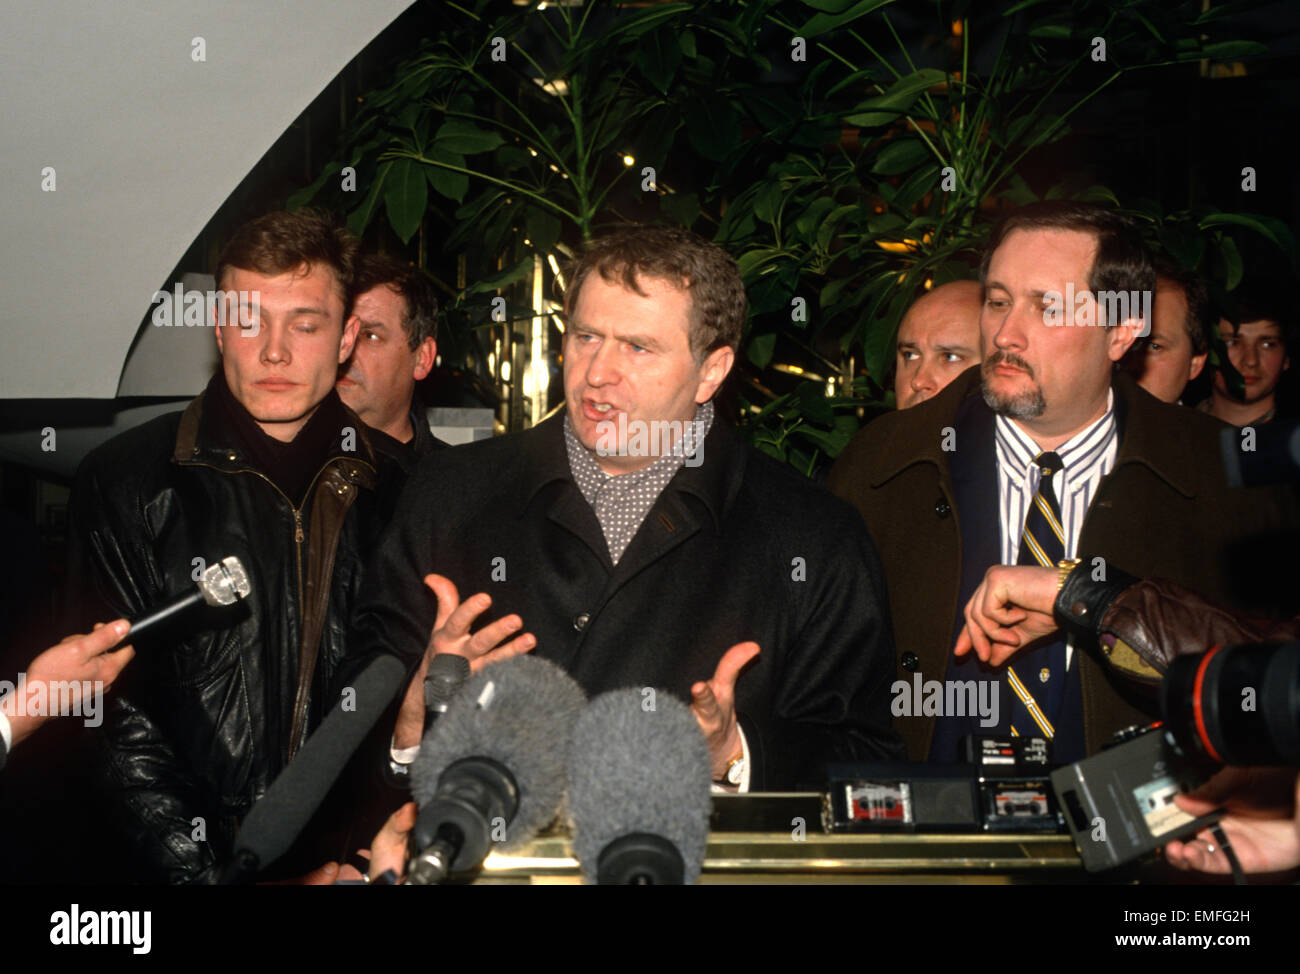 Russian ultra nationalist politician Vladimir Zhirinovsky during a press conference March 5, 1994 in Moscow, Russia. - Stock Image